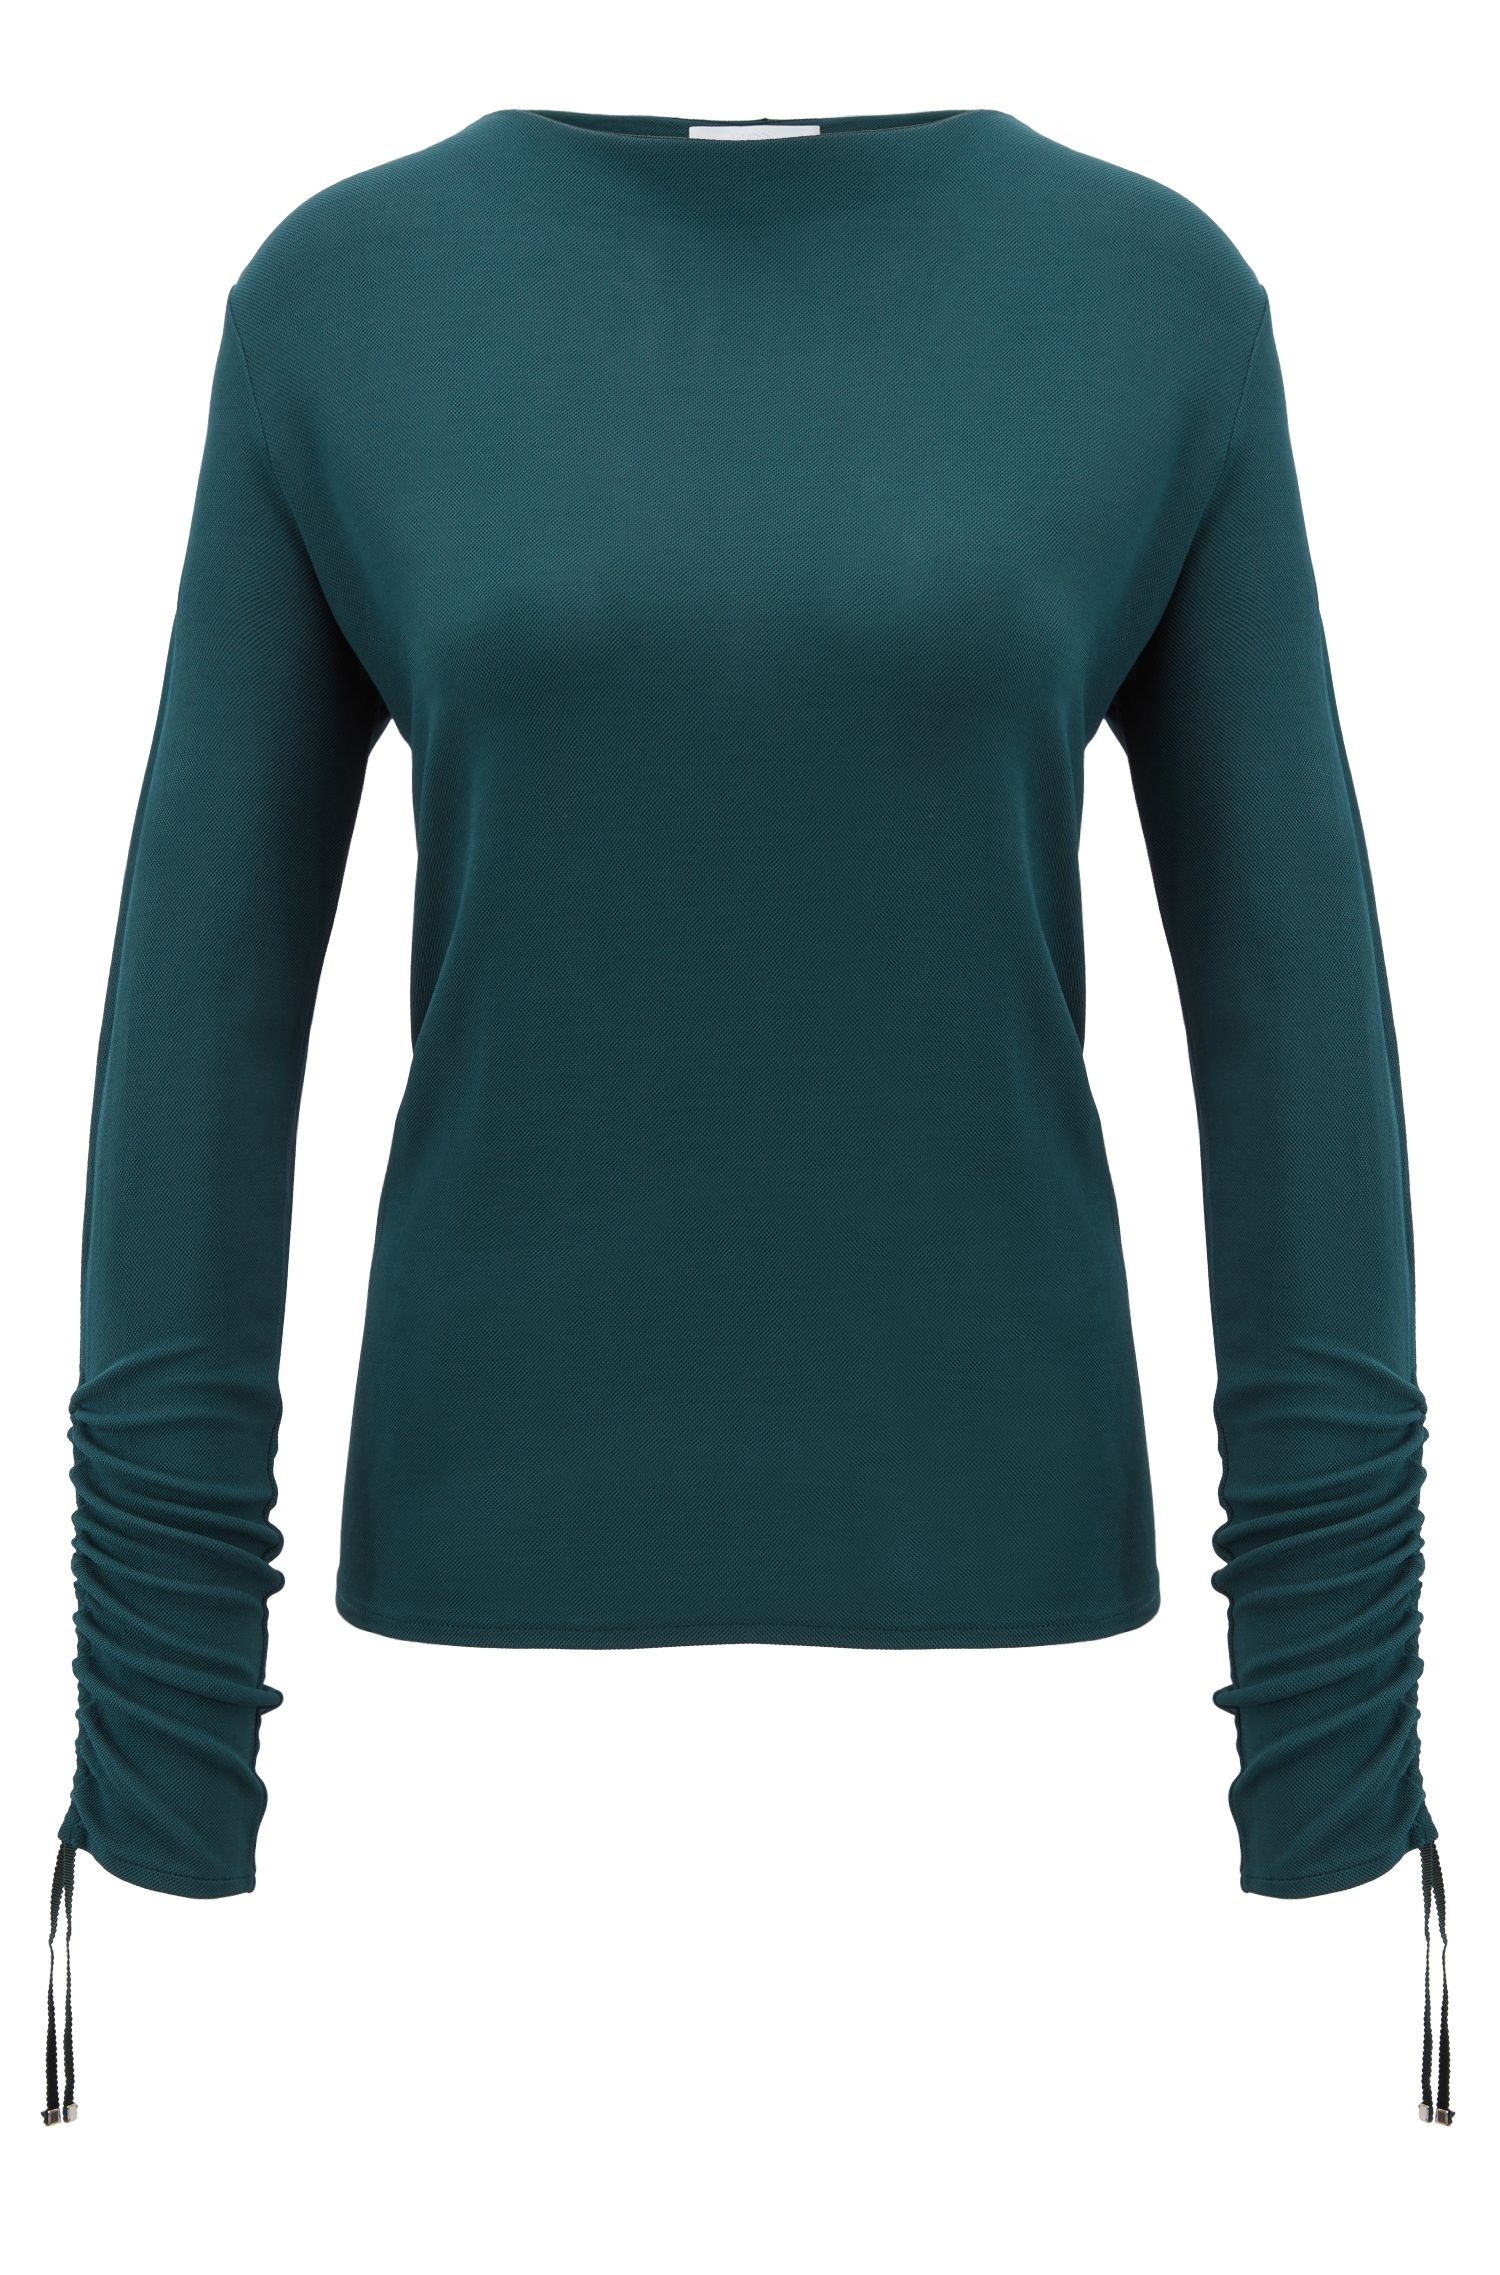 Regular-fit jersey top with gathered sleeves